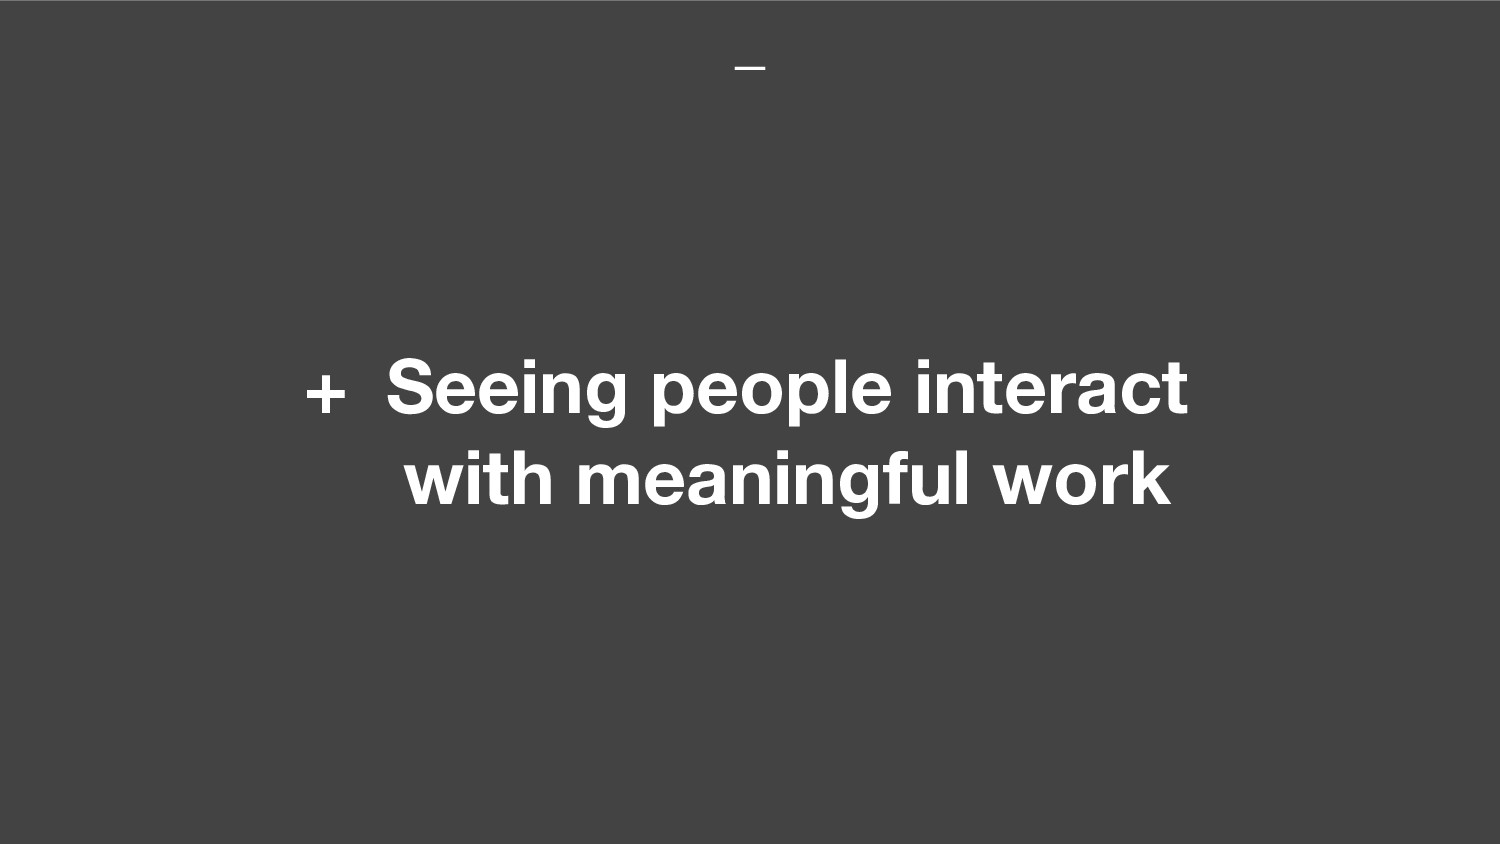 + Seeing people interact with meaningful work